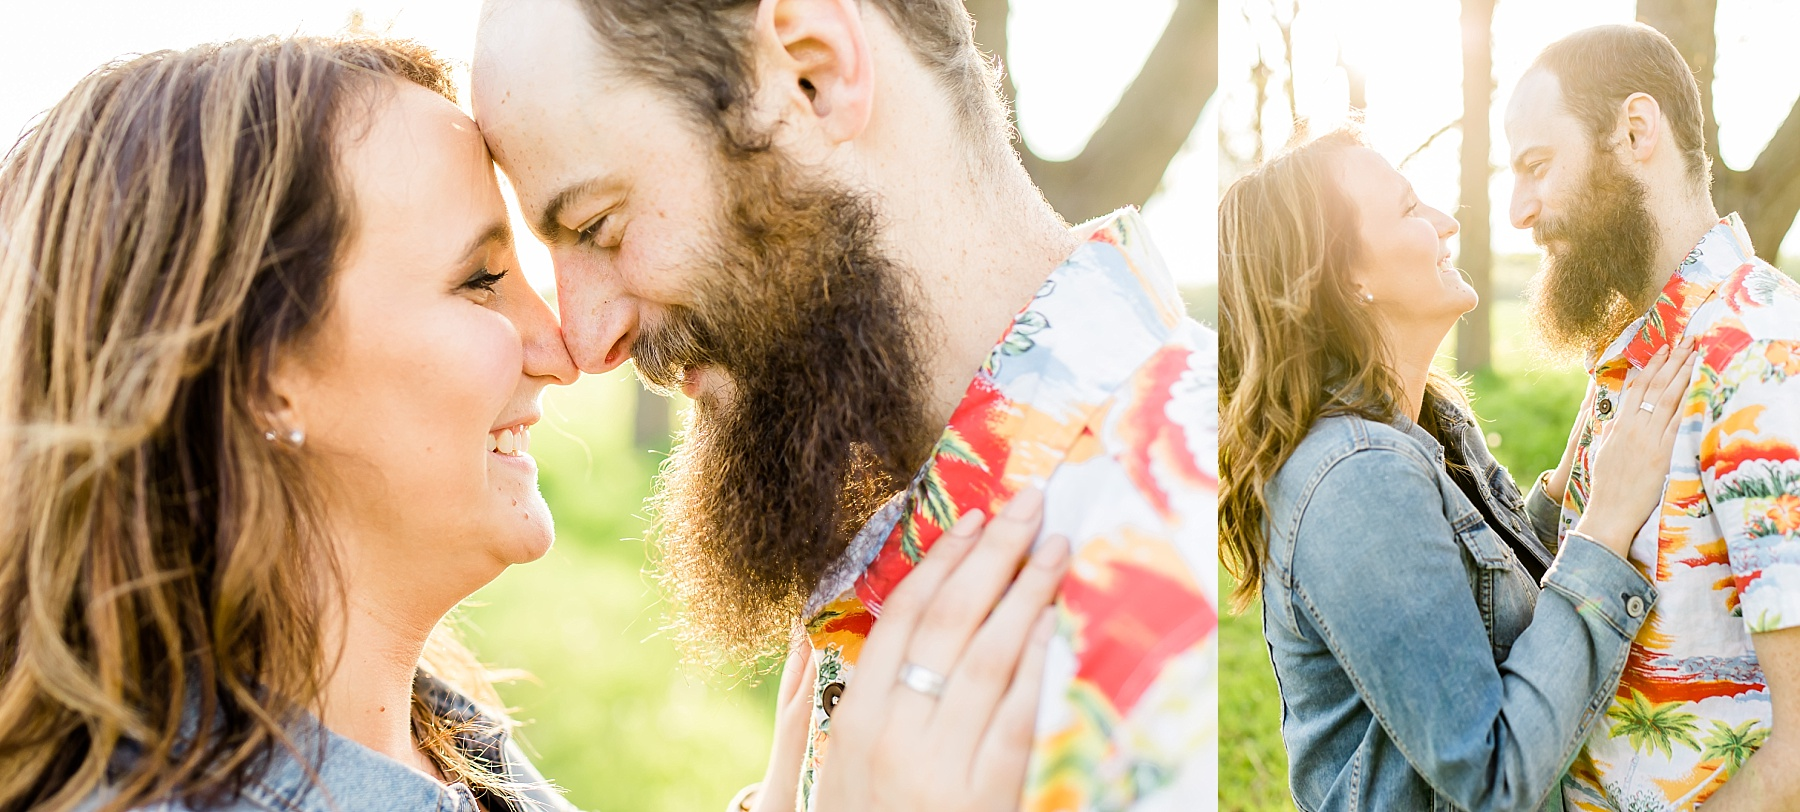 monticello indiana wedding engagement photography simple adventure weird_0044.jpg